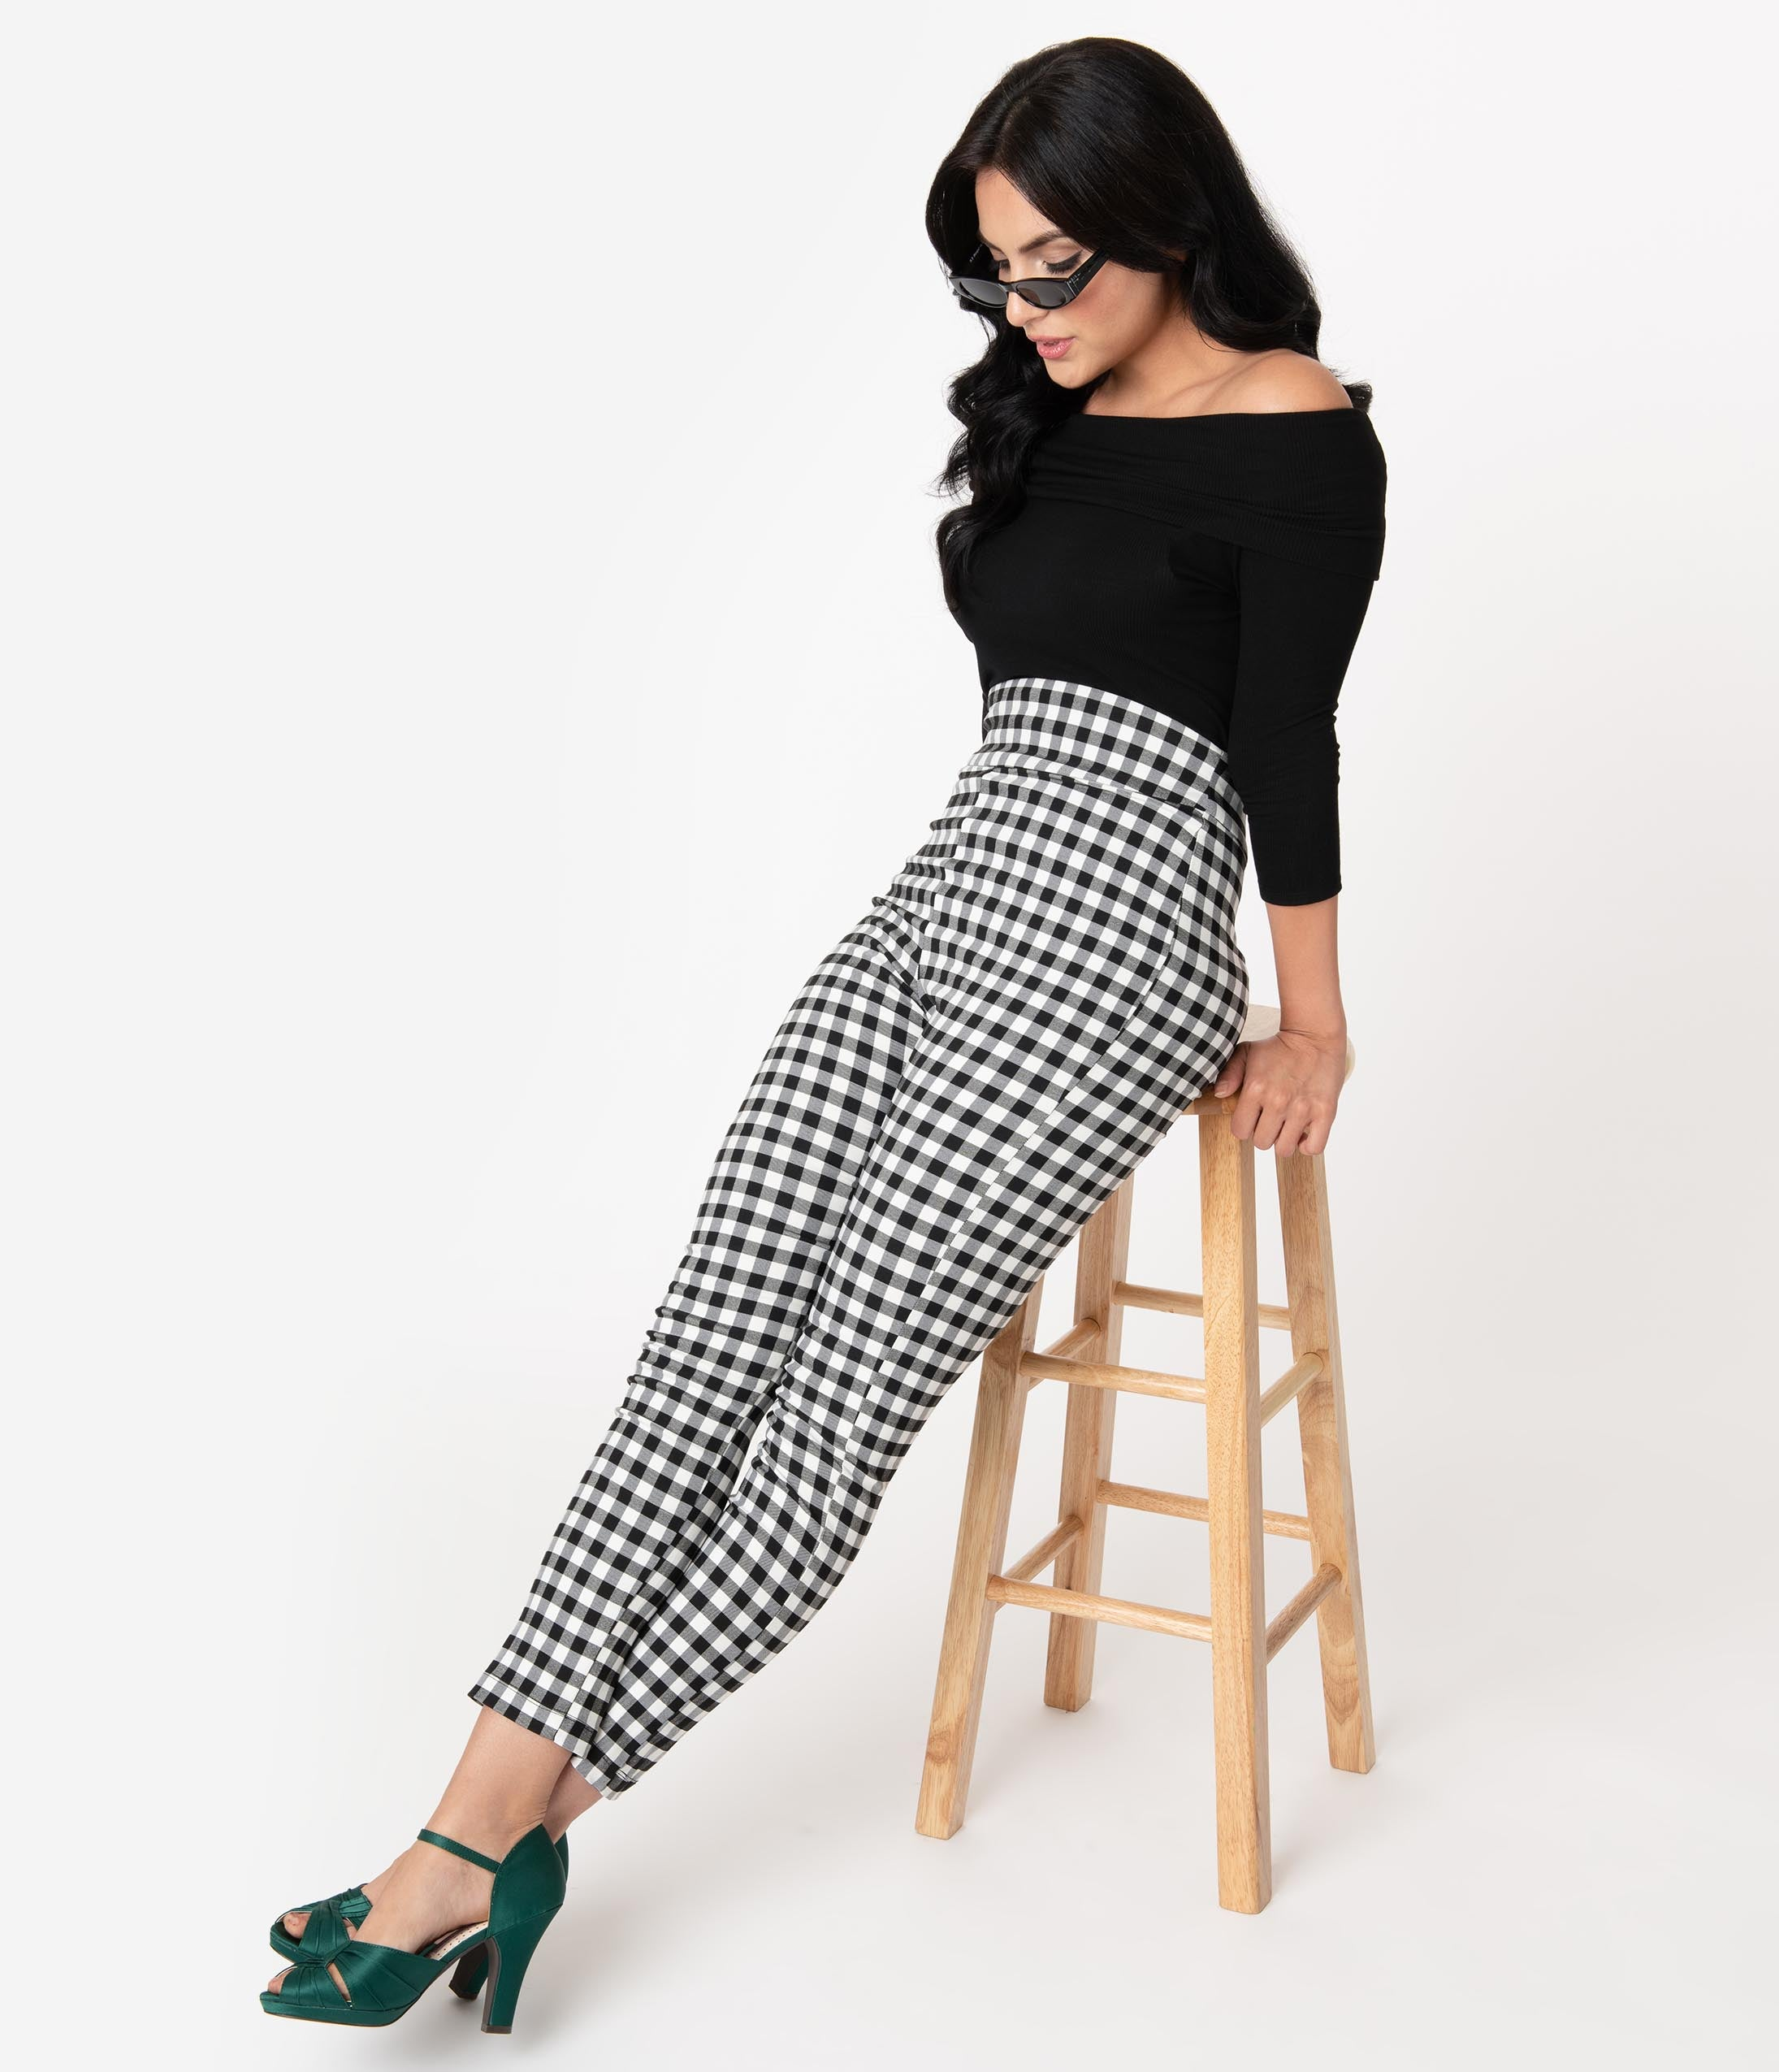 60s Mod Clothing Outfit Ideas Unique Vintage Black  White Gingham High Waist Rizzo Cigarette Pants $58.00 AT vintagedancer.com